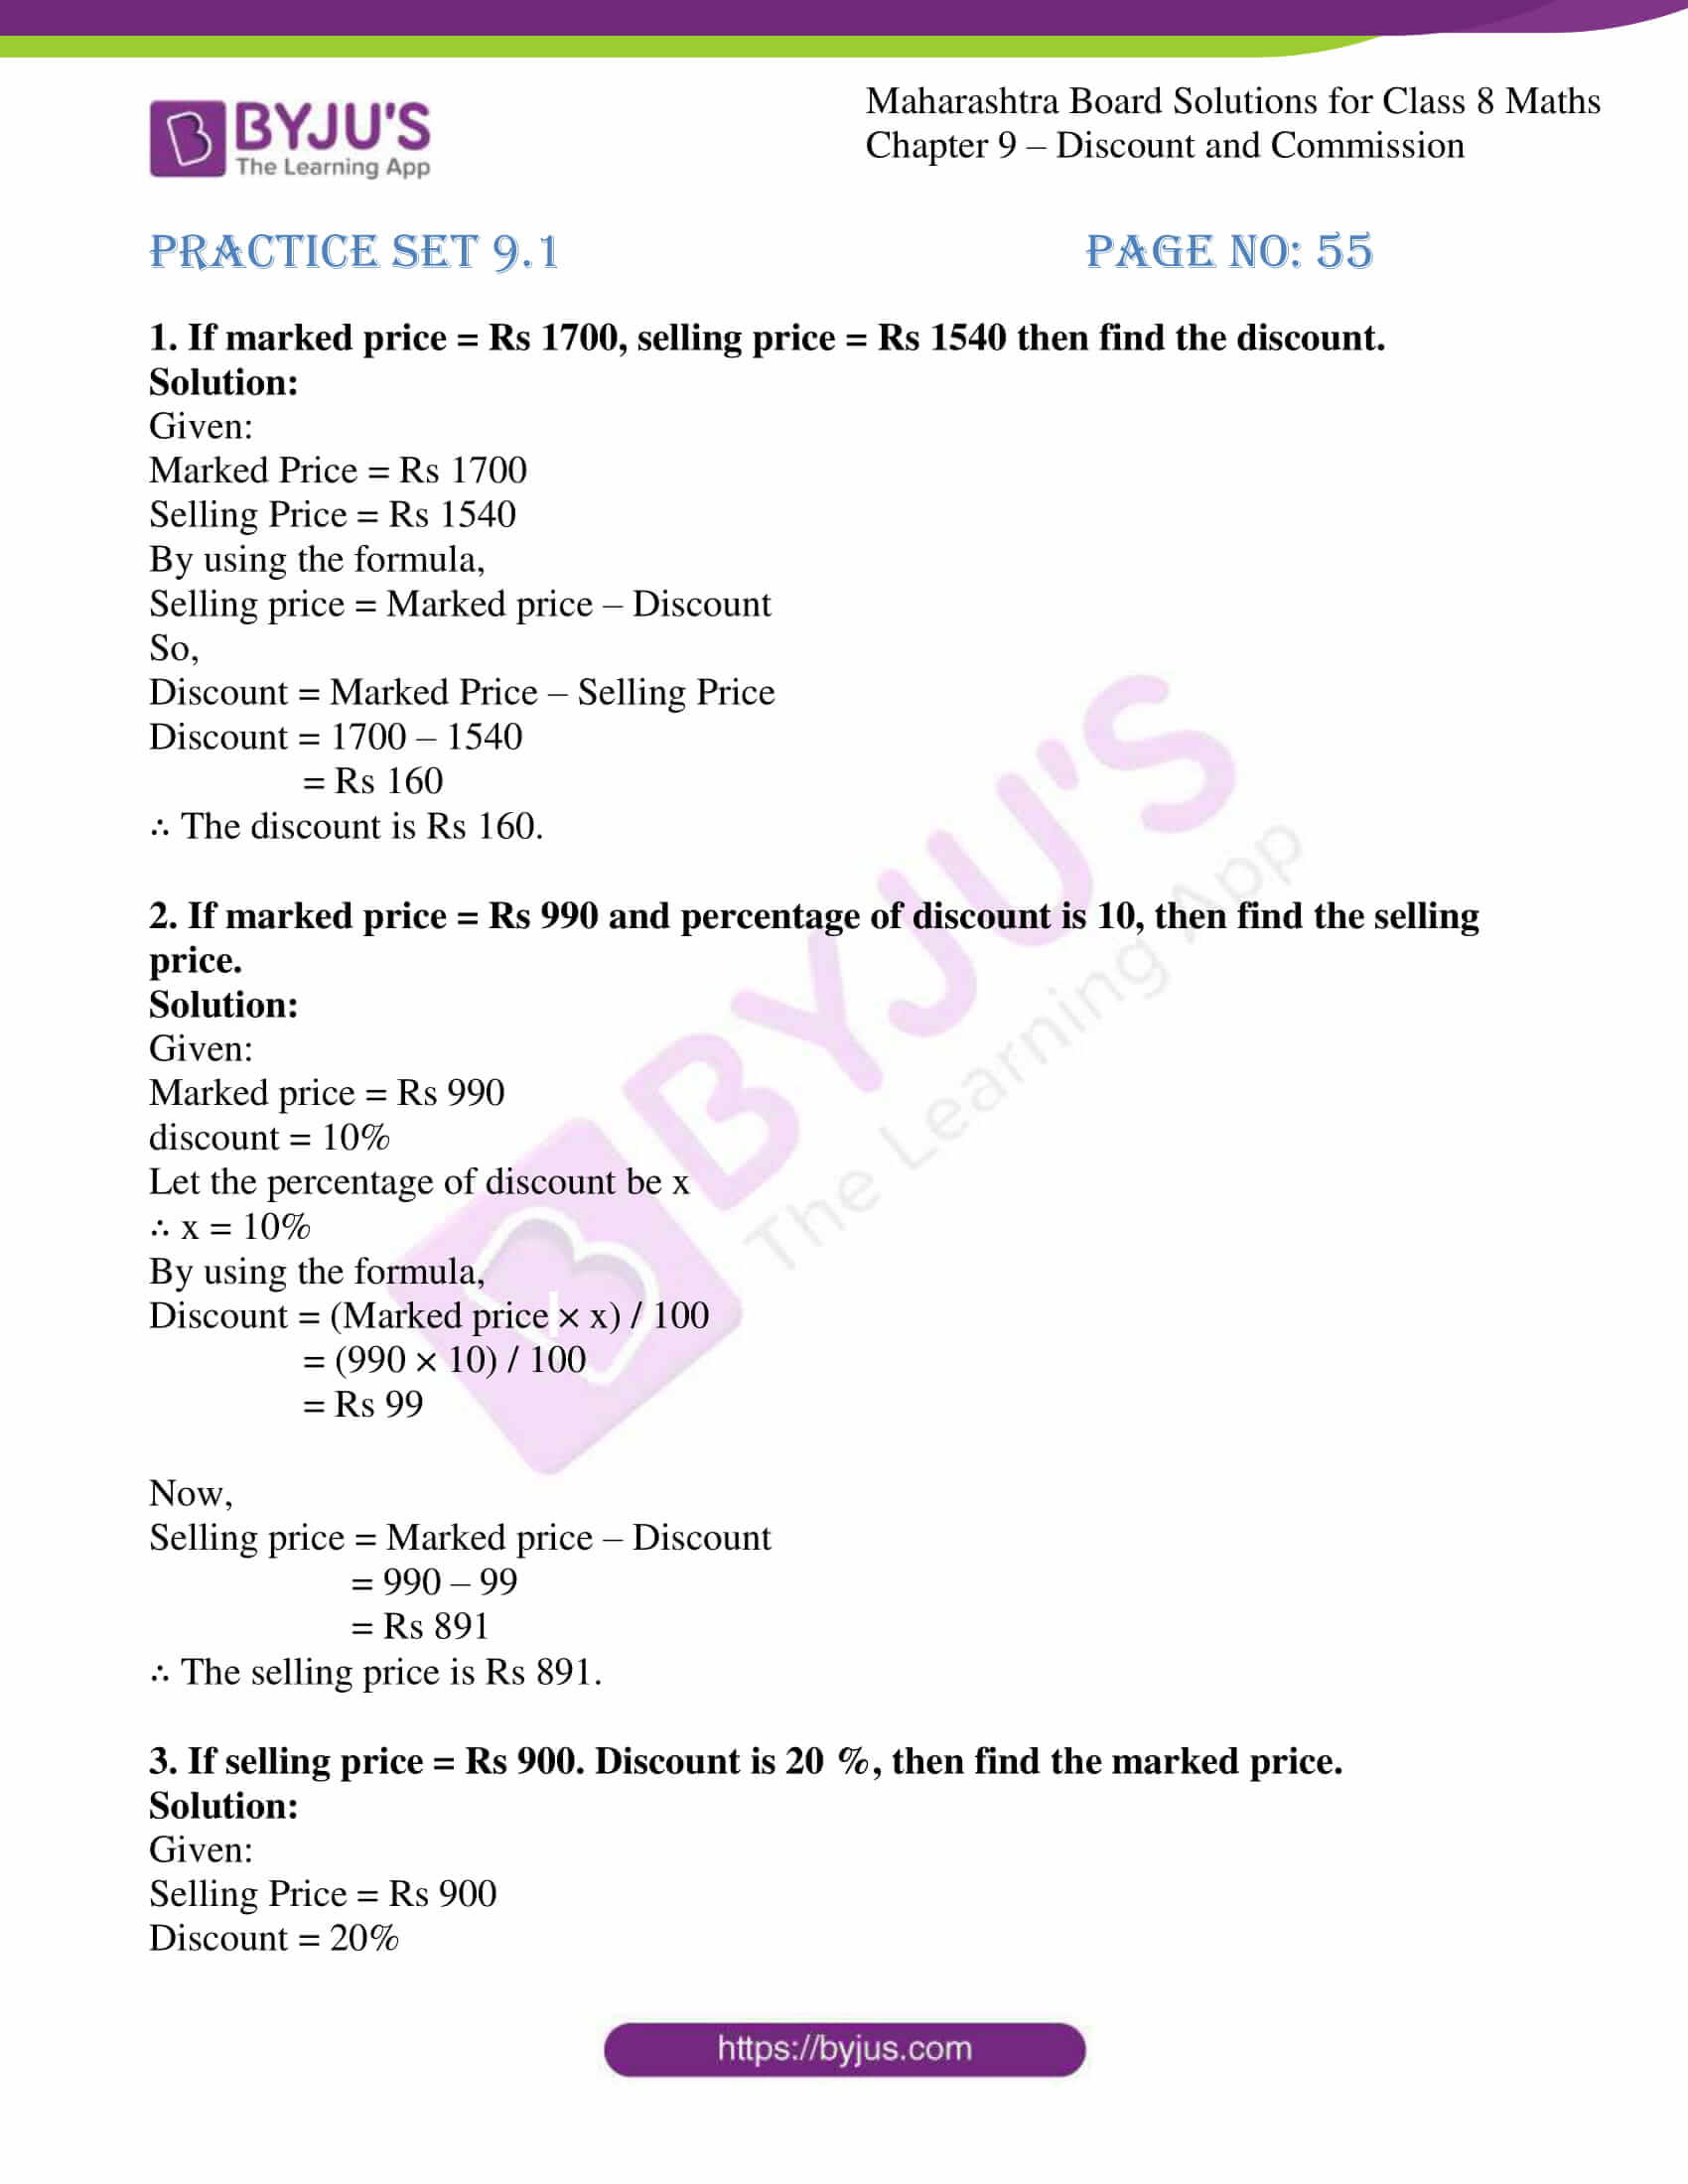 msbshse sol for class 8 maths chapter 9 1